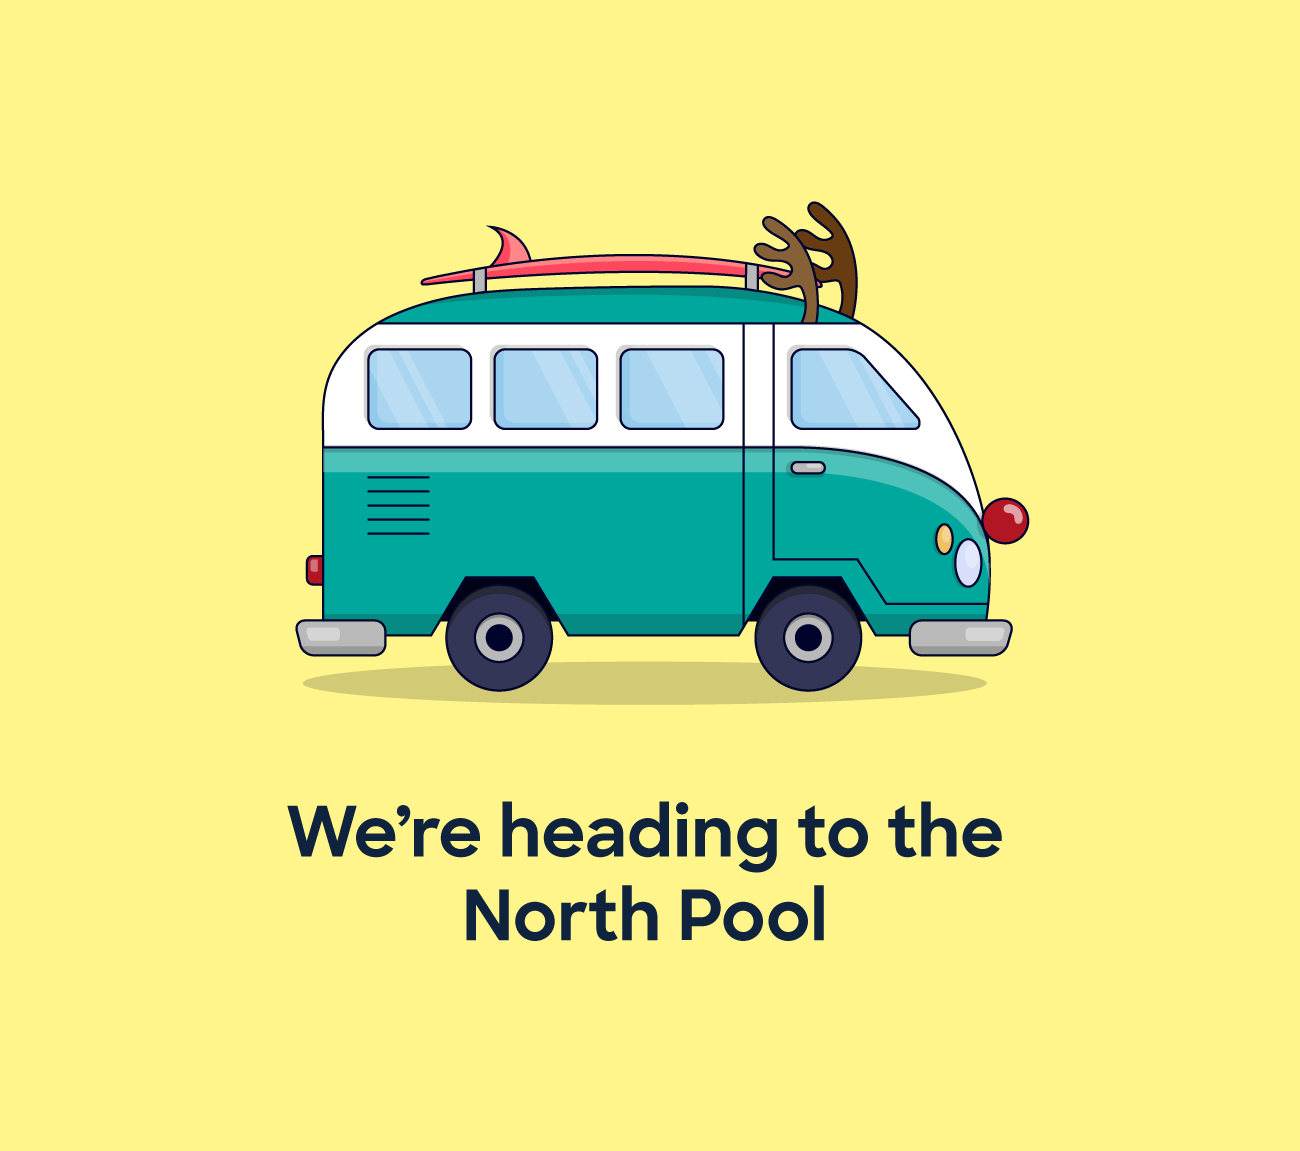 we're heading to the north pool in a combi van with reindeer antlers